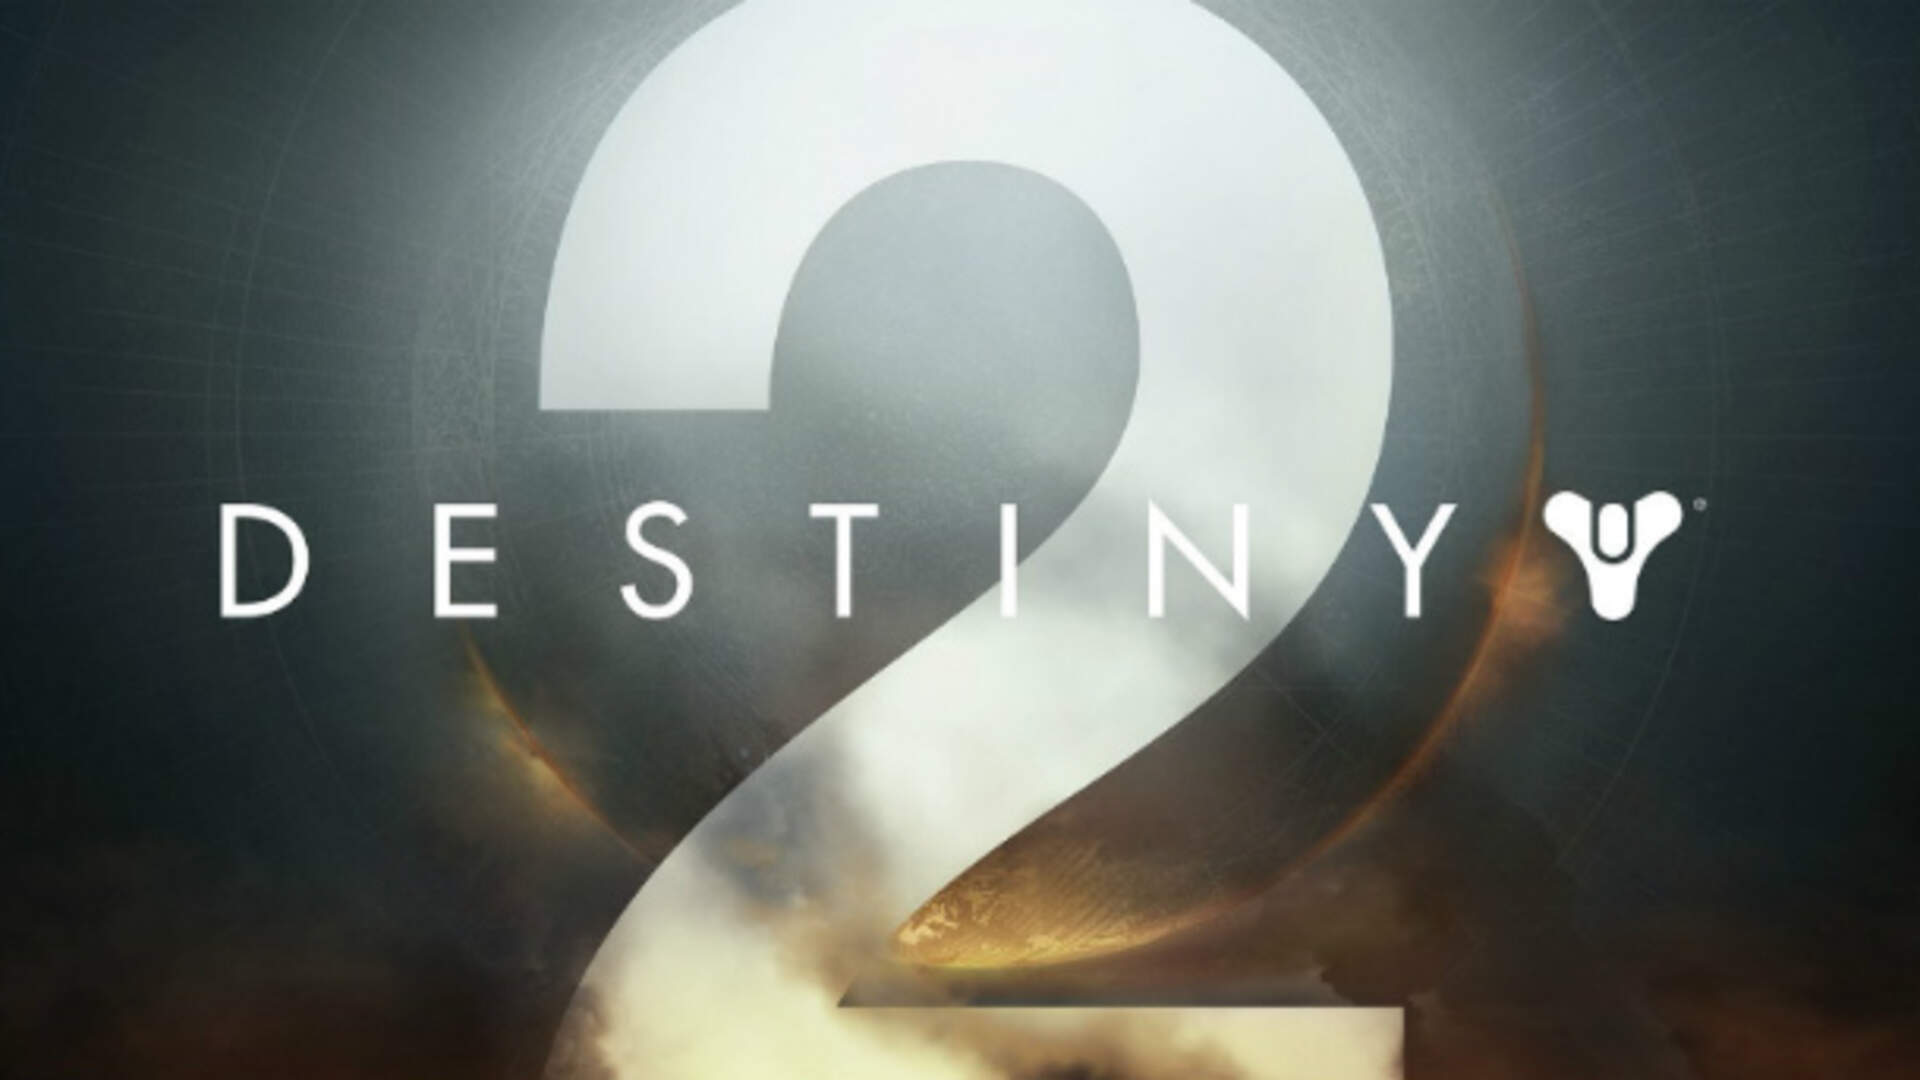 Destiny 2 Beginner's Guide - Story Walkthroughs, Essential Tips and Tricks